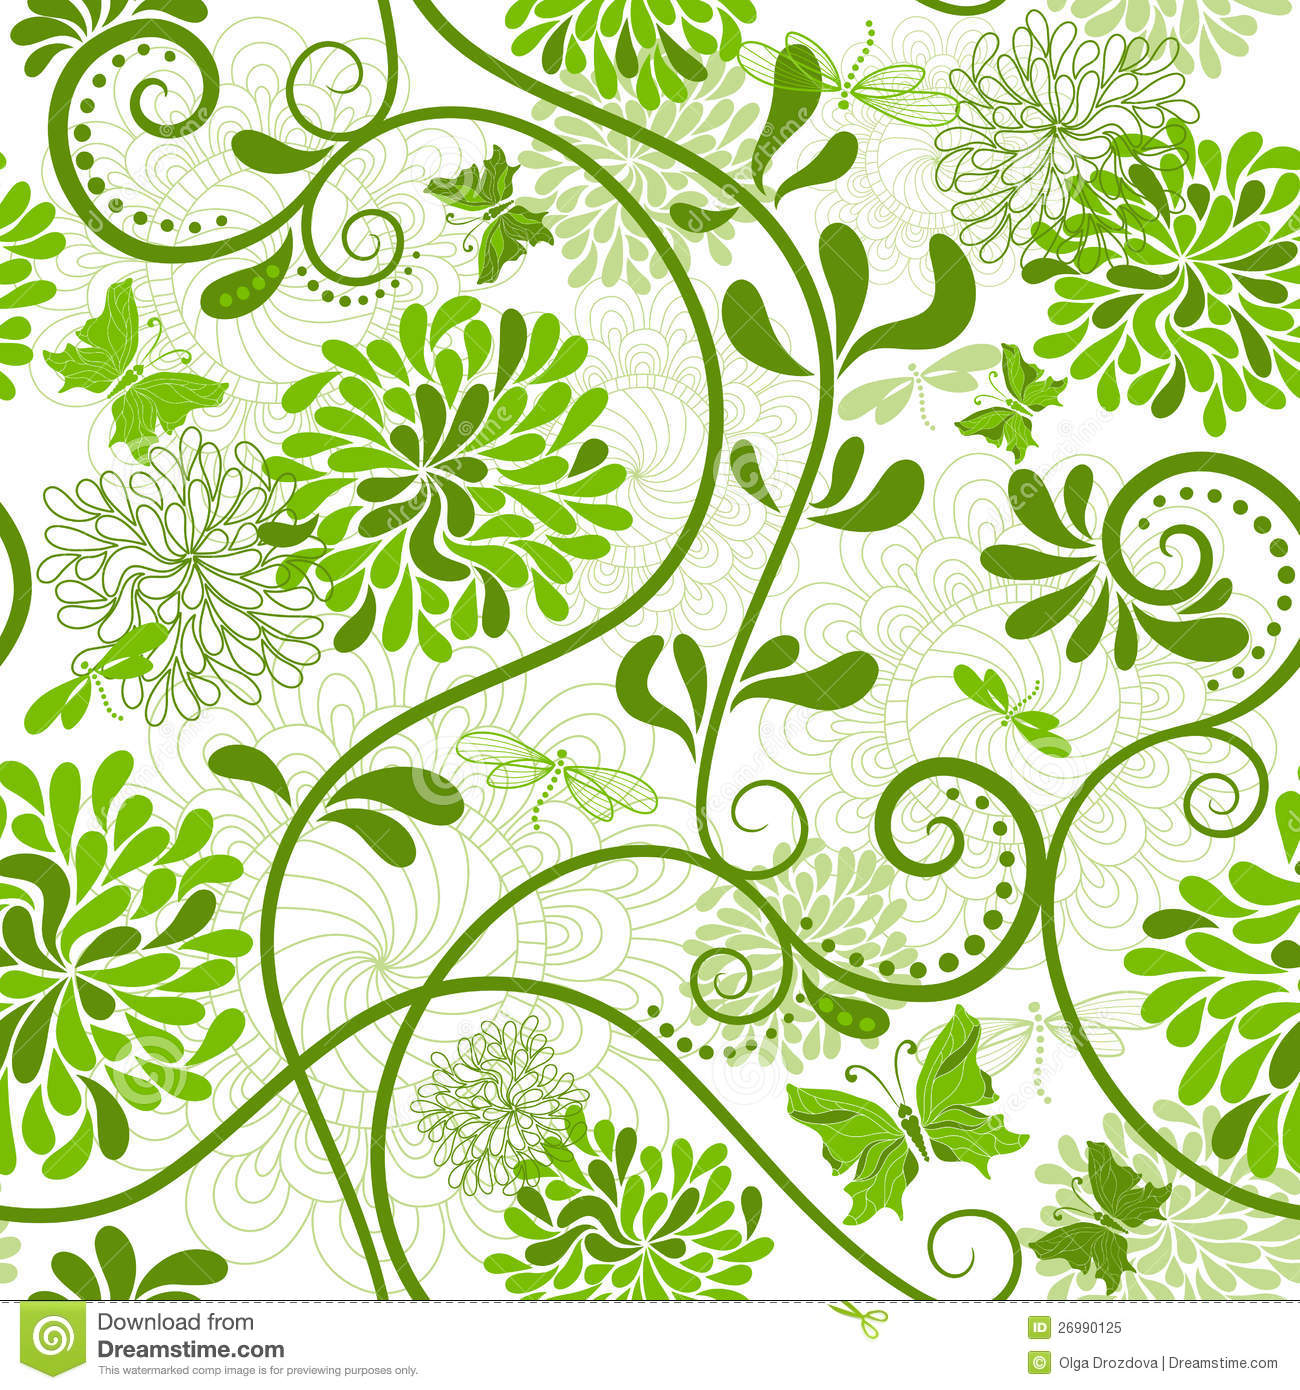 Green and white floral pattern - photo#2